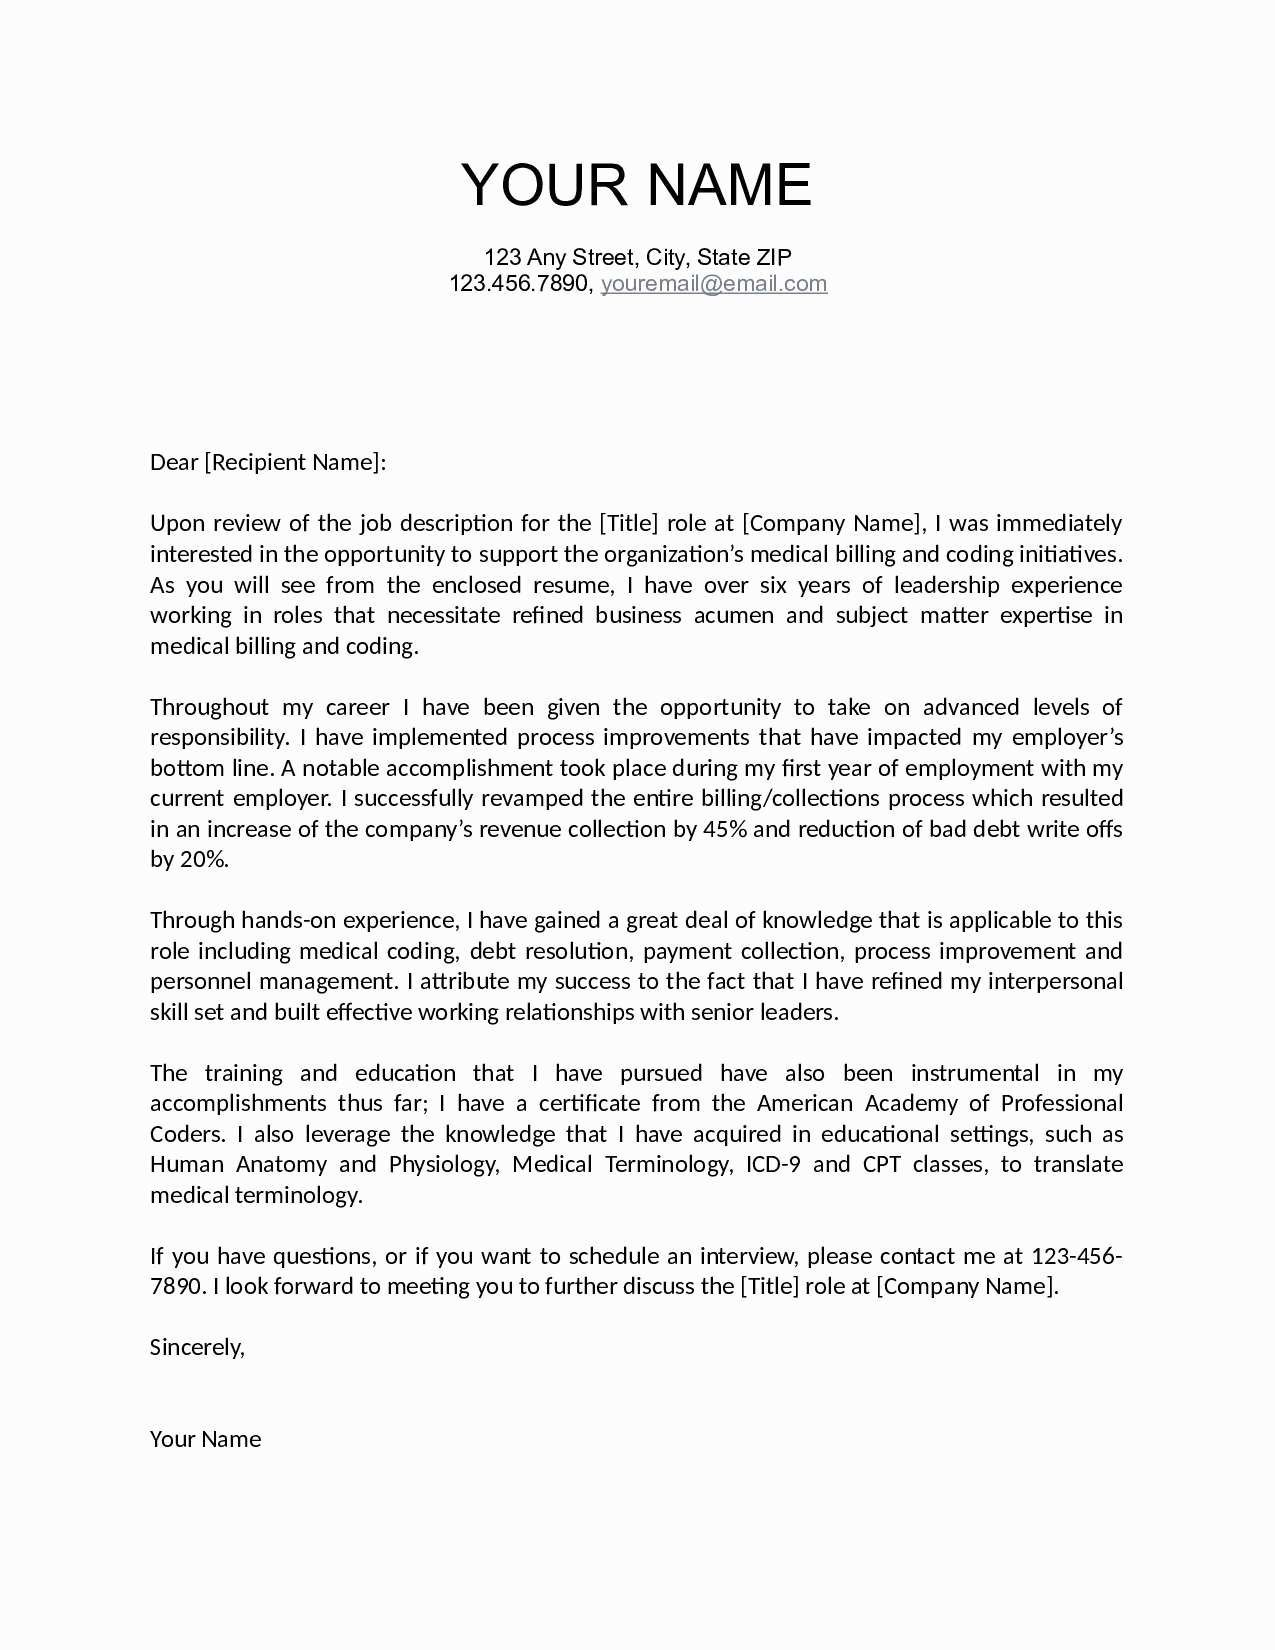 Company Letter Template   What To Write A Covering Letter For A Job